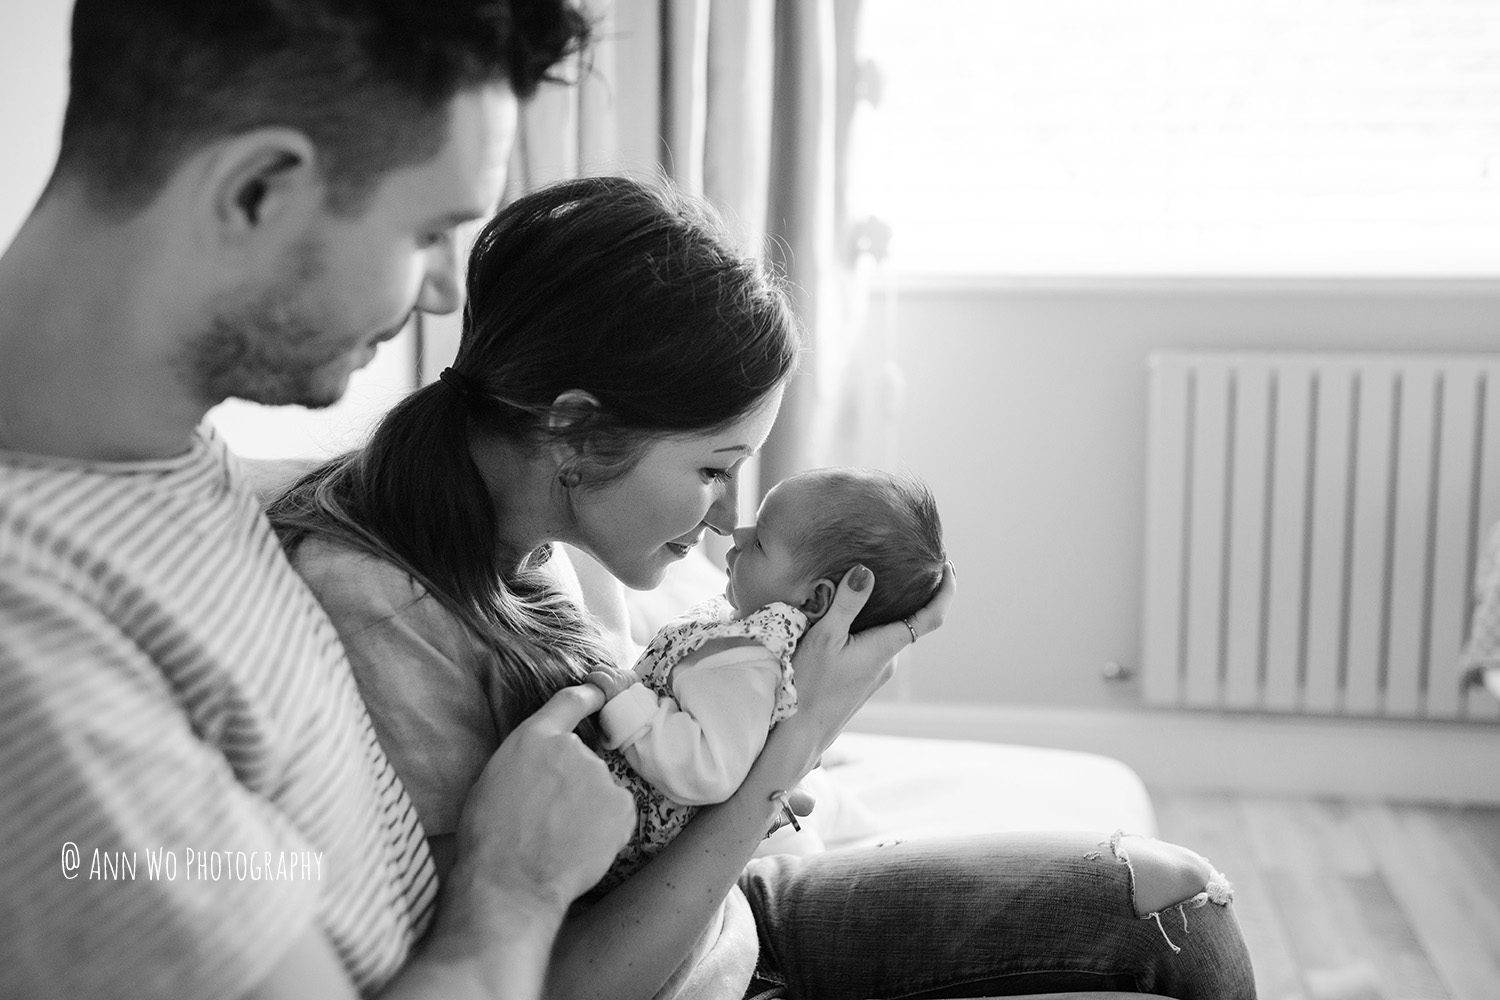 newborn-baby-photography-london-lifestyle-ann-wo-017.JPG